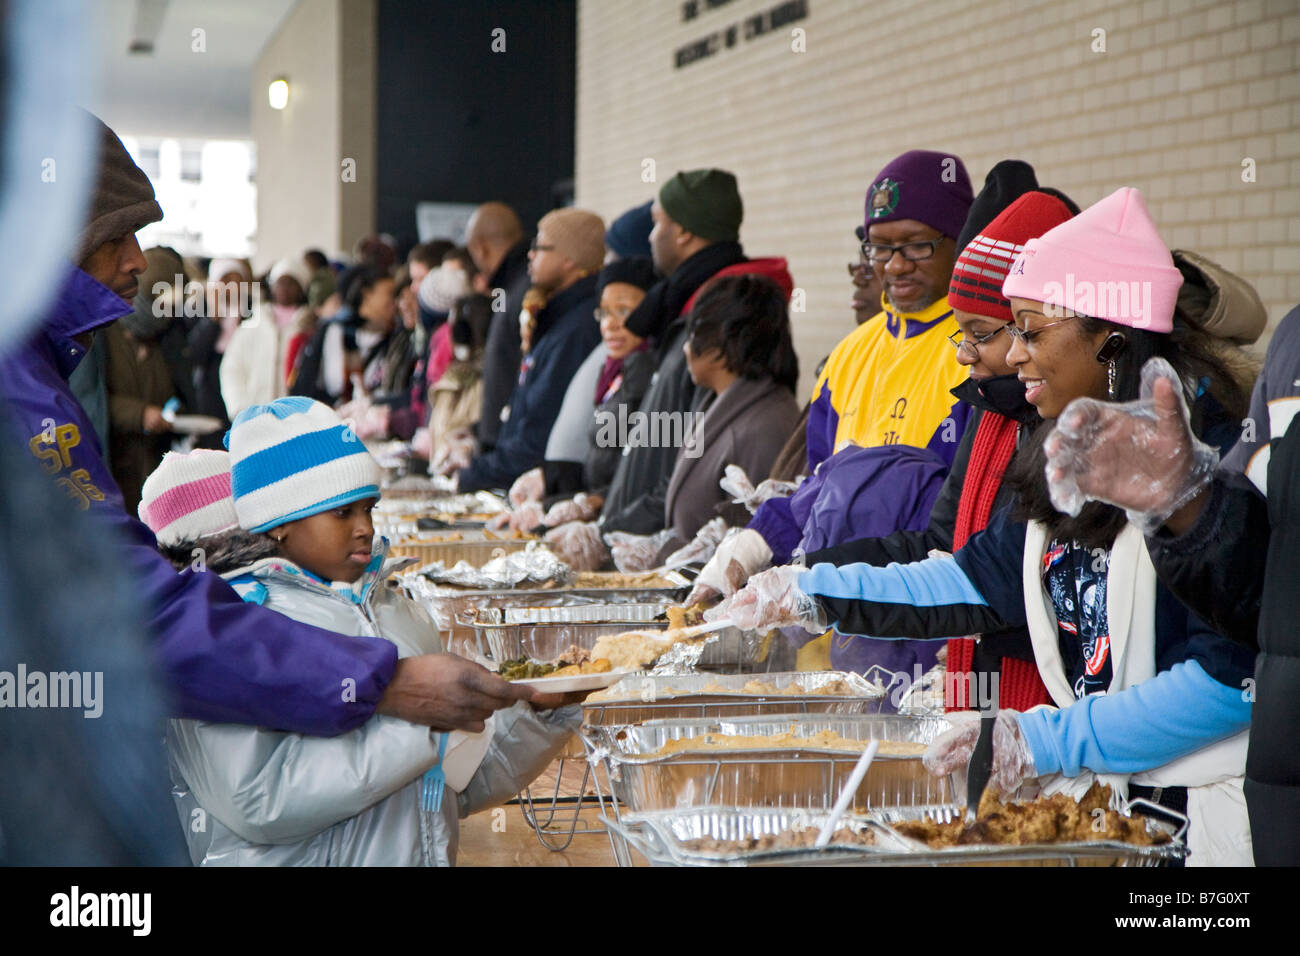 Exceptional Volunteers Serve Meal To The Homeless At Outdoor Soup Kitchen Images